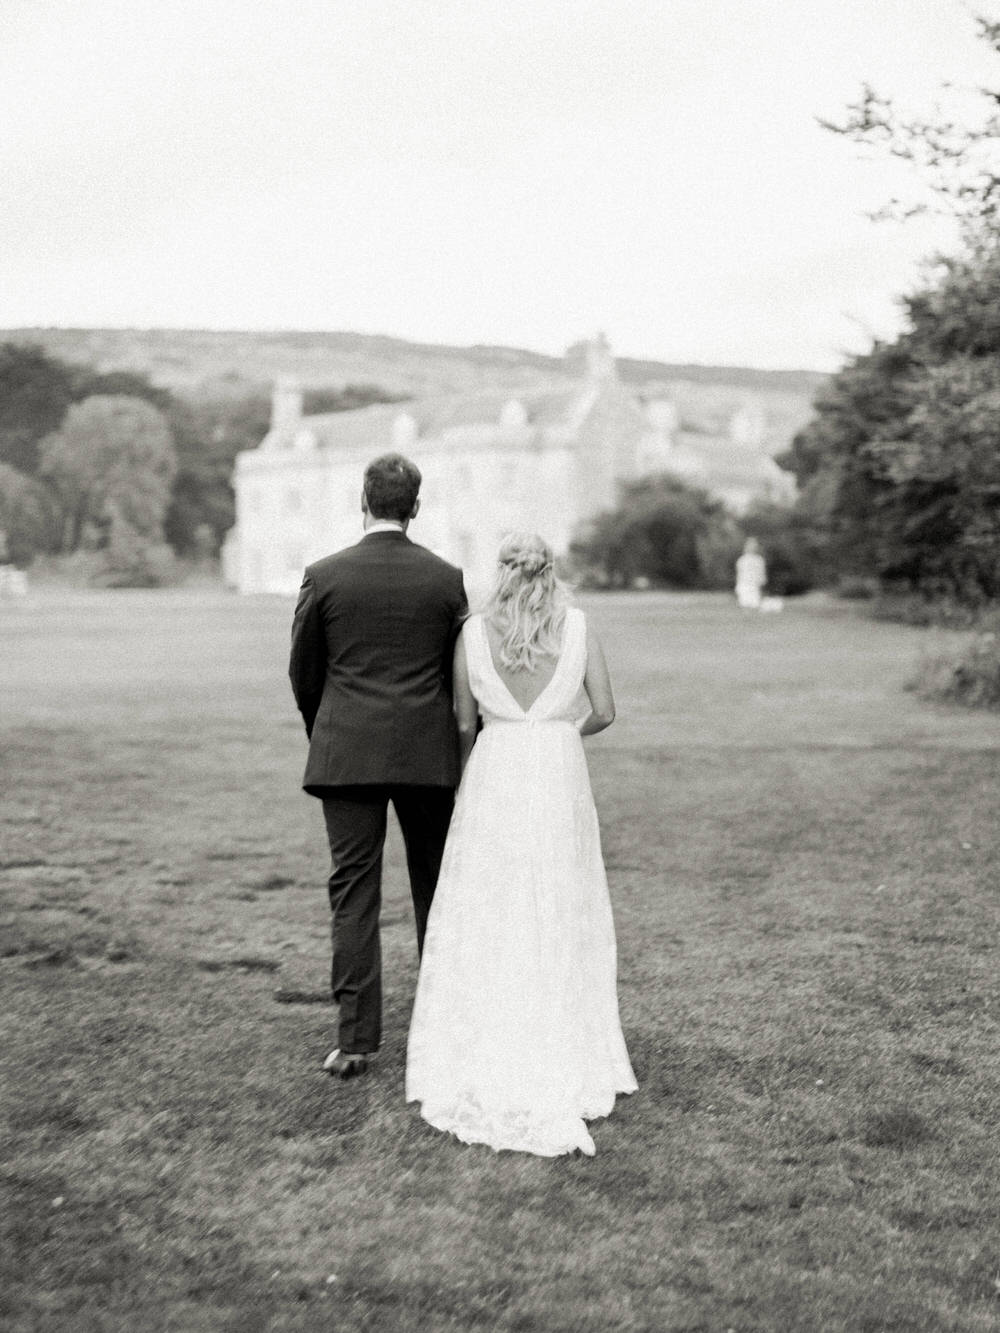 kimmeridge wedding by imogen xiana-958.jpg